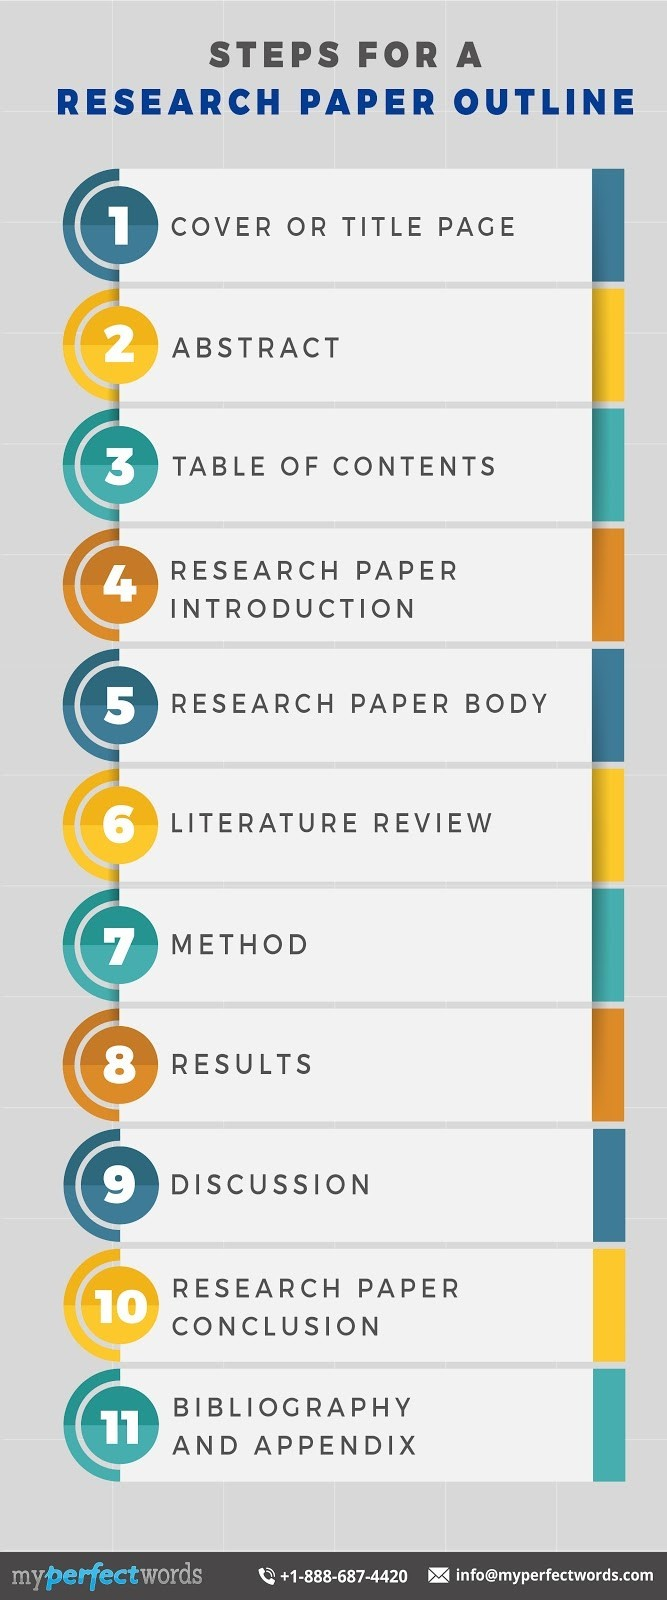 steps for a research paper outline